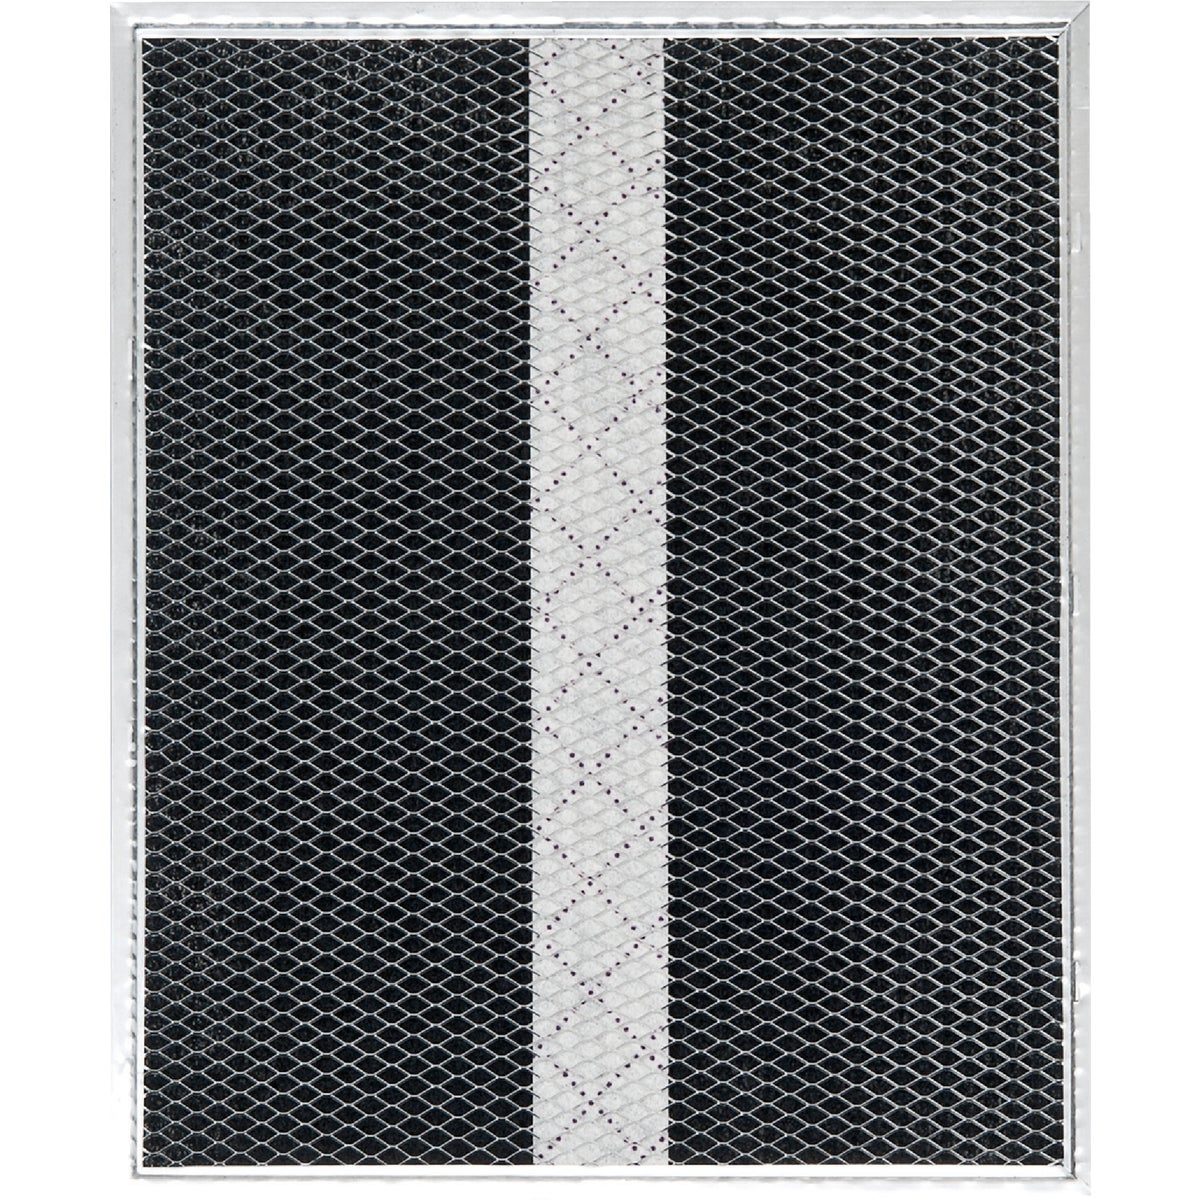 ALLURE NON-DUCTED FILTER